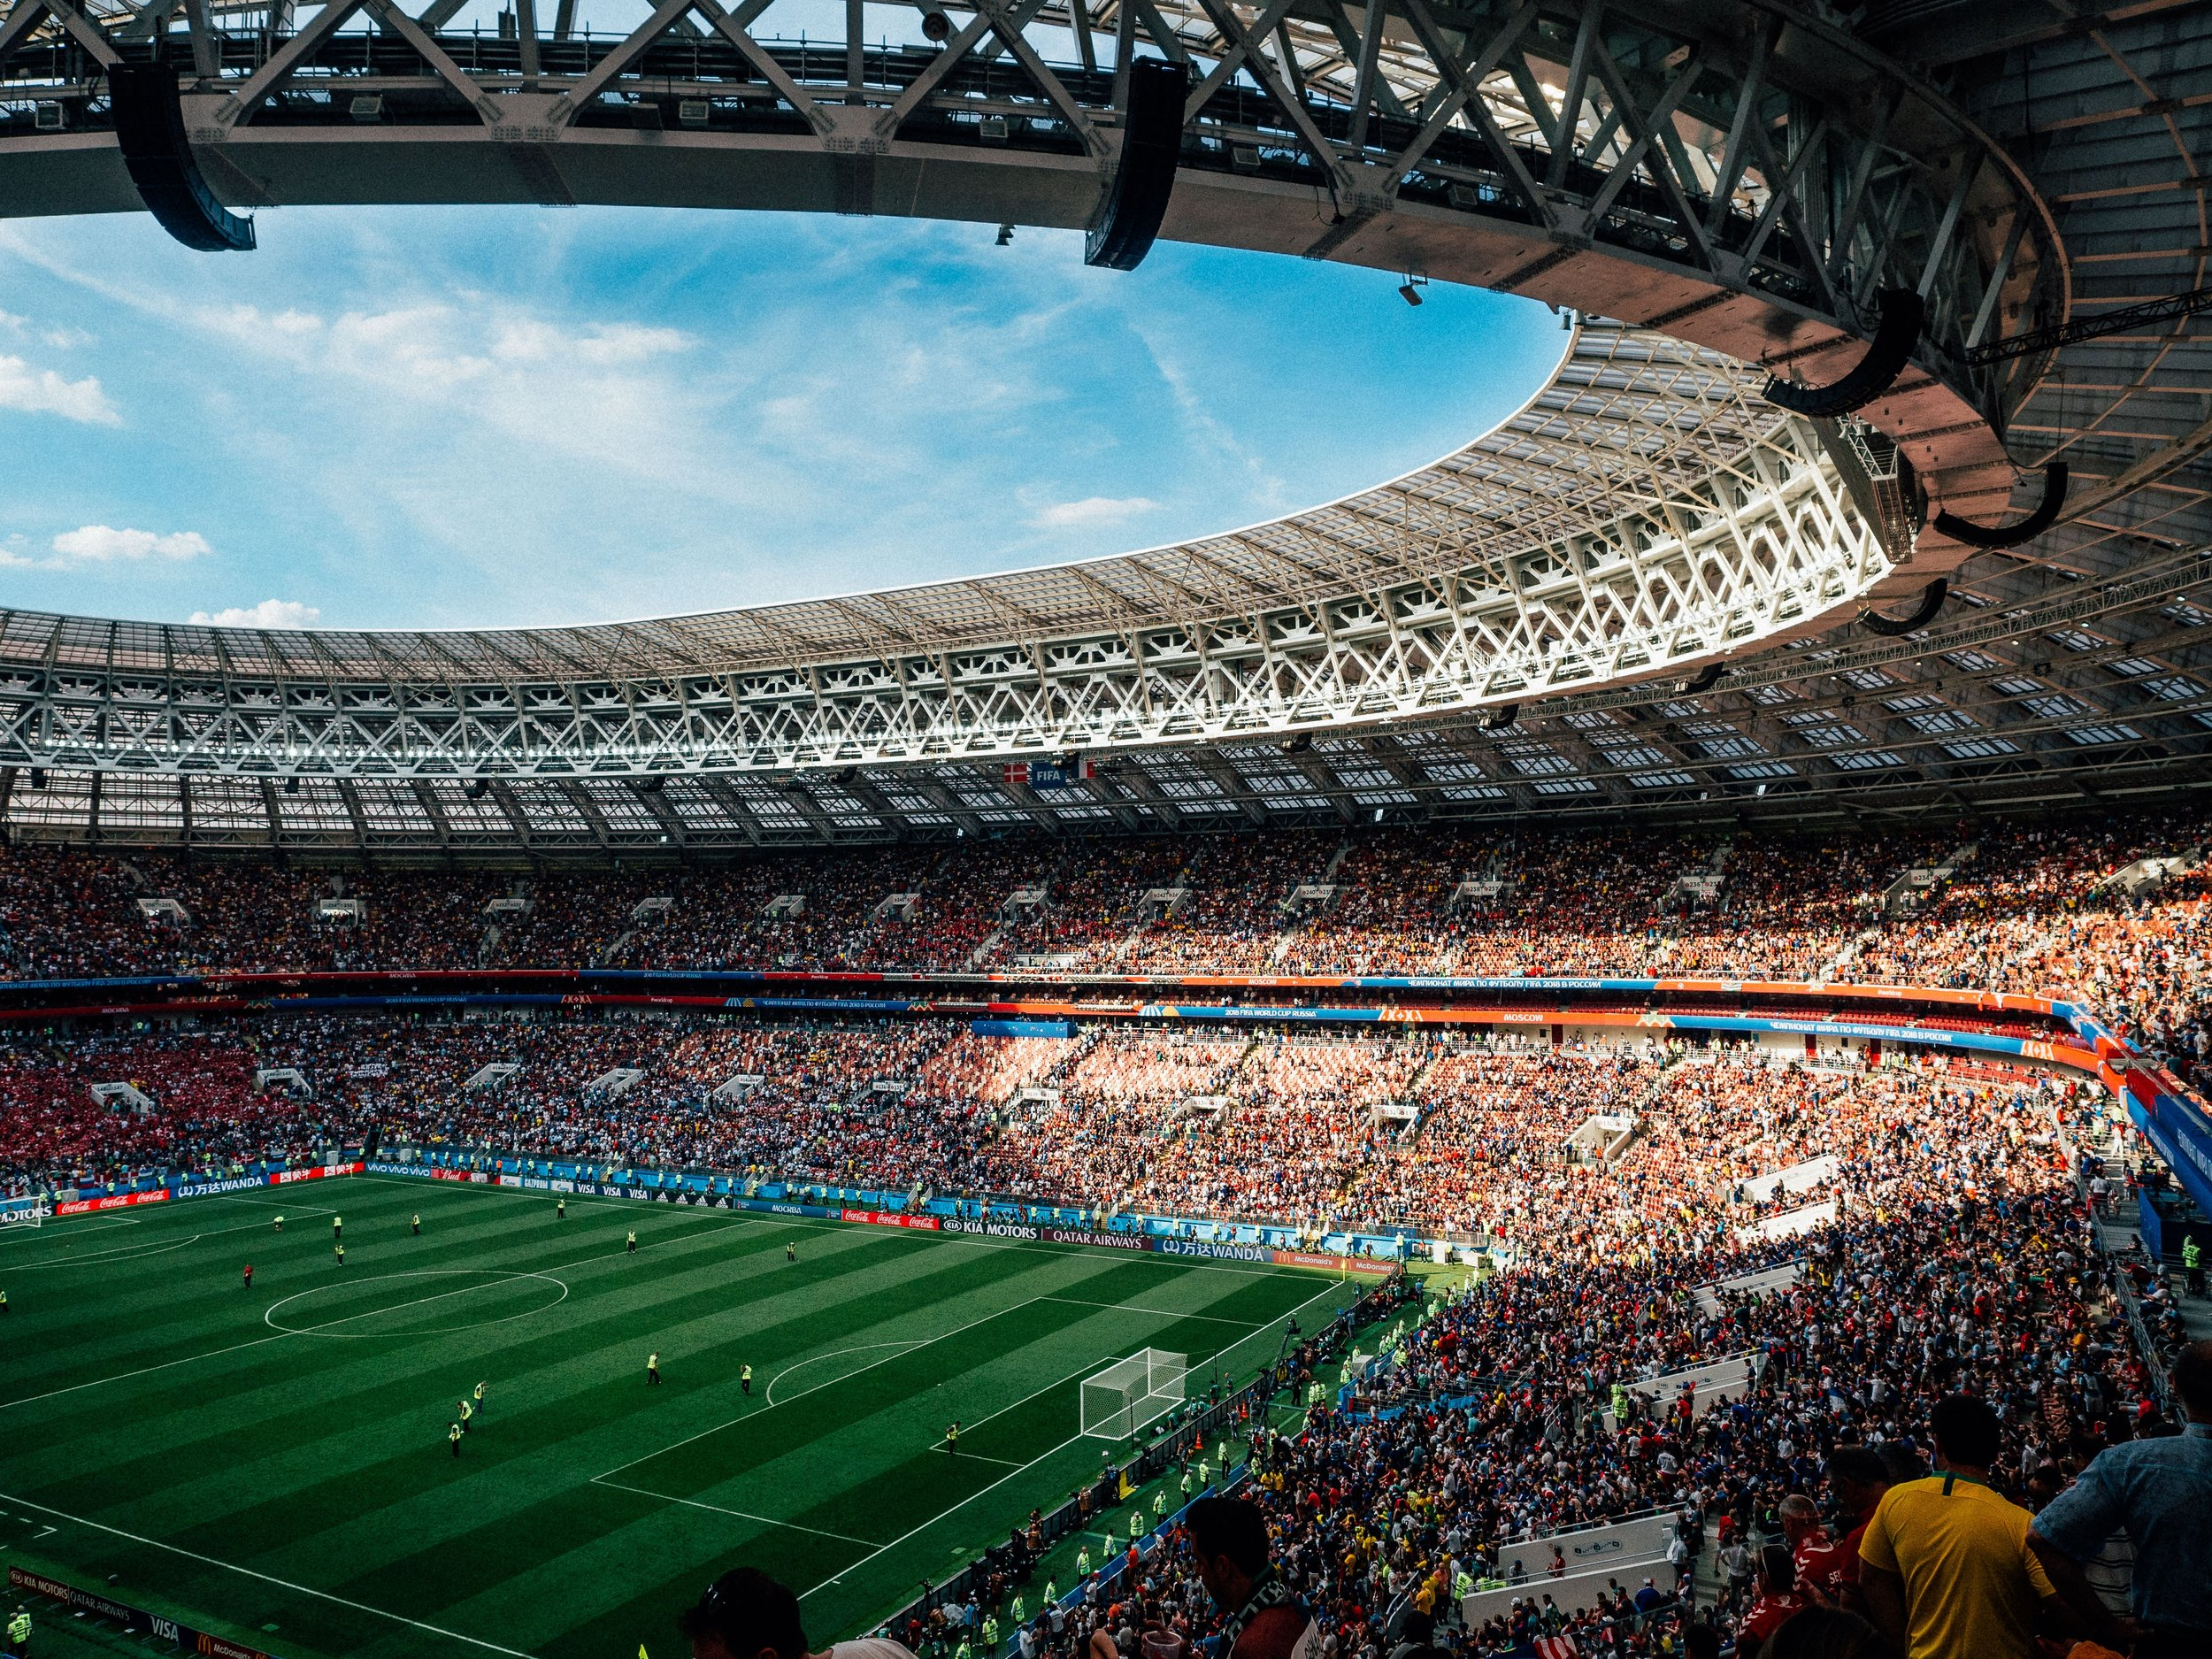 The Business of Football - Our new series of articles looks at the game's relationship with money from diverse perspectives around the world.Click here to see articles from this series